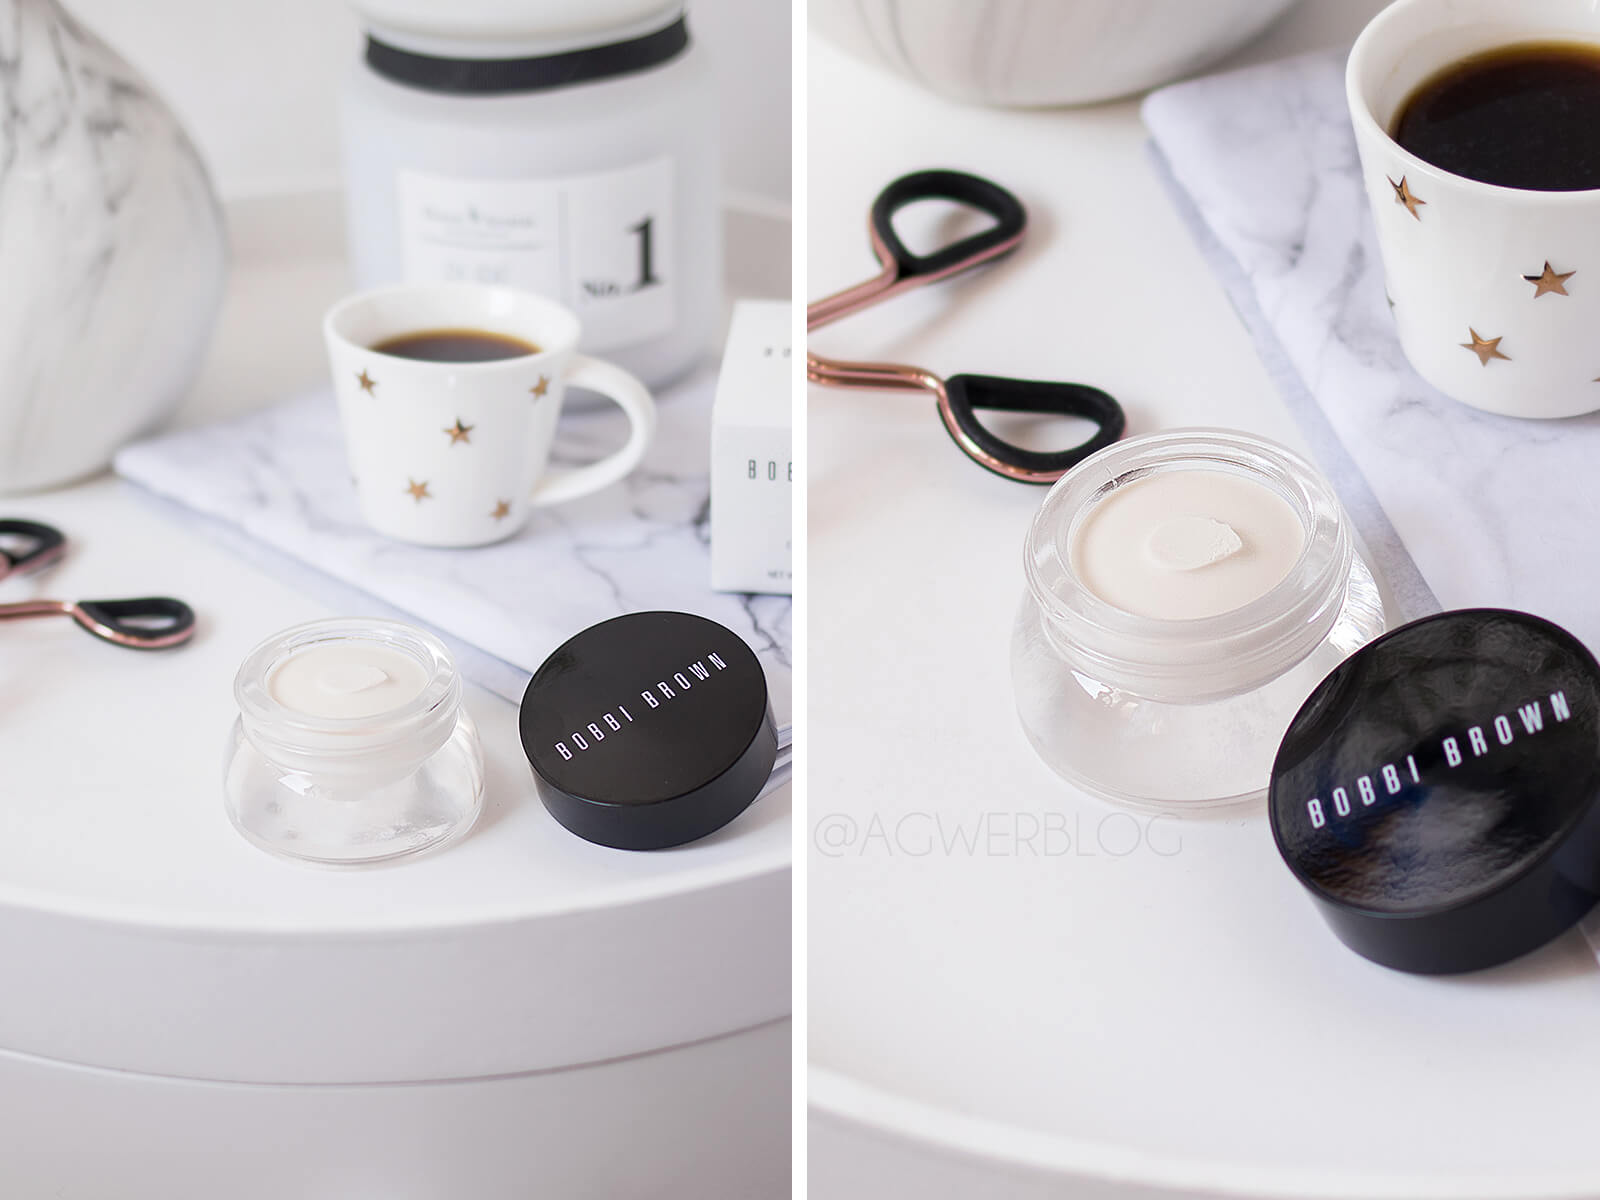 krem pod oczy bobbi brown